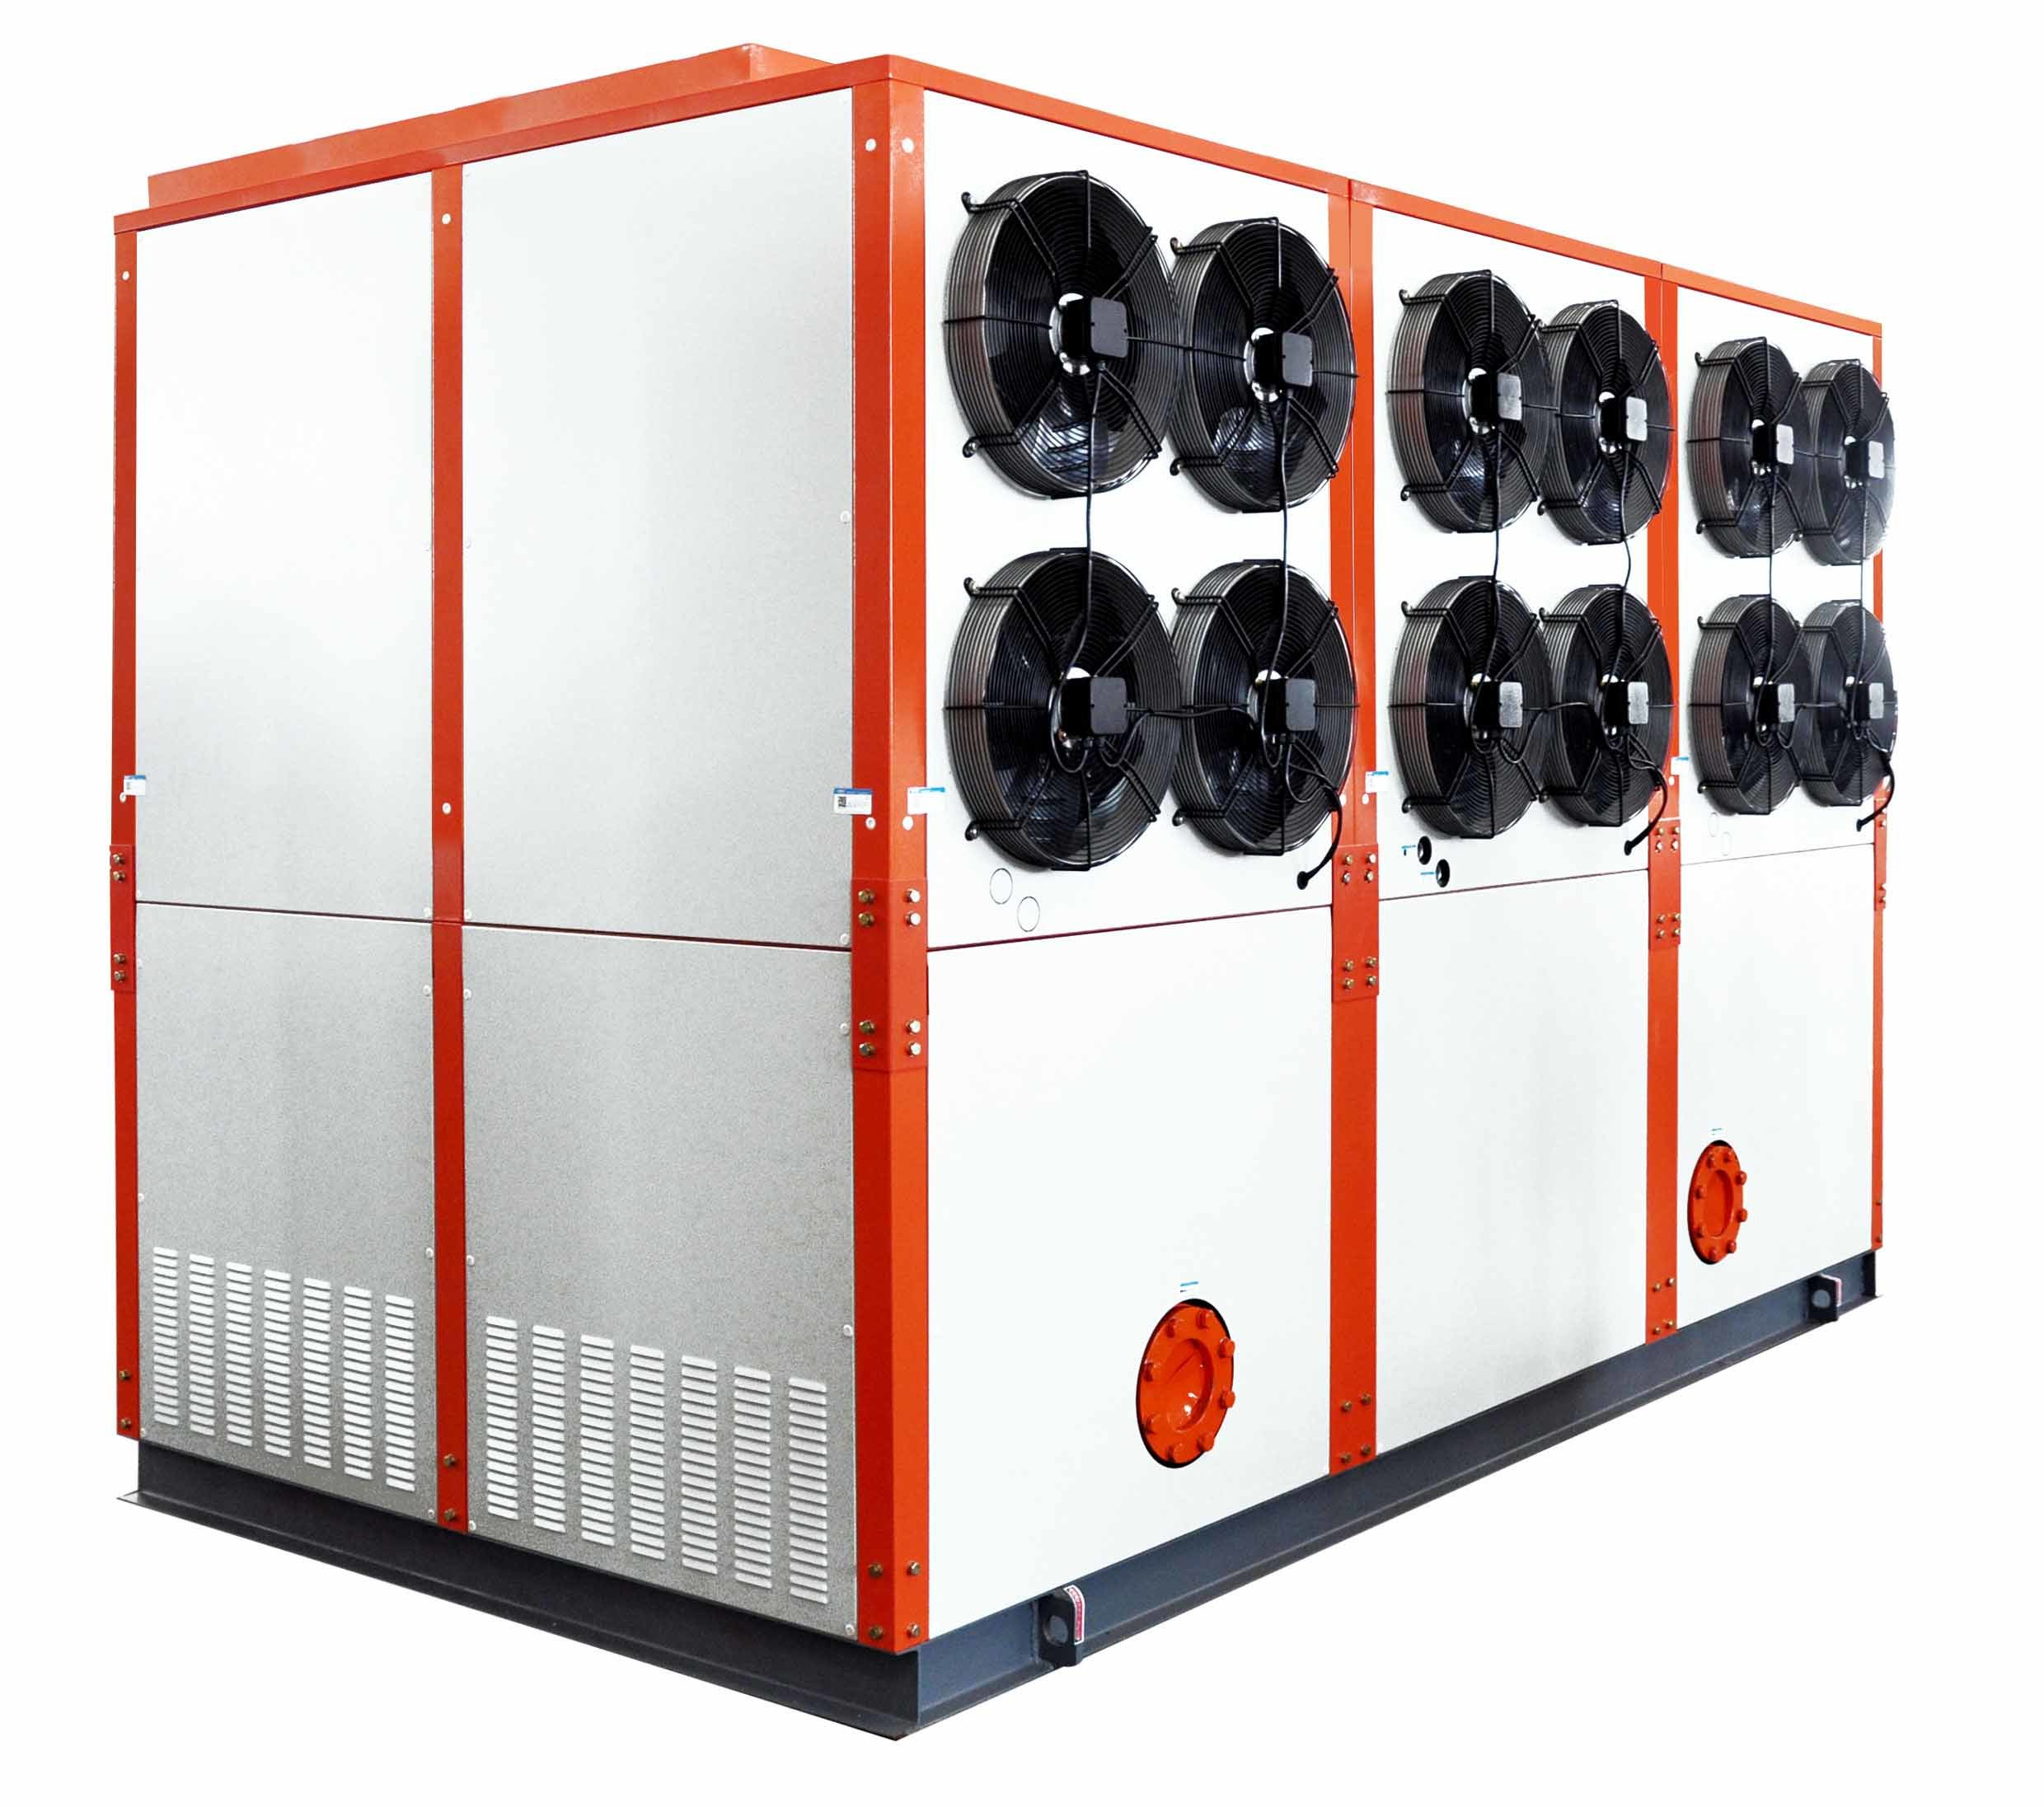 730kw Cooling Capacity Customized Intergrated Industrial Evaporative Cooled Pharmaceutical HVAC Water Chiller